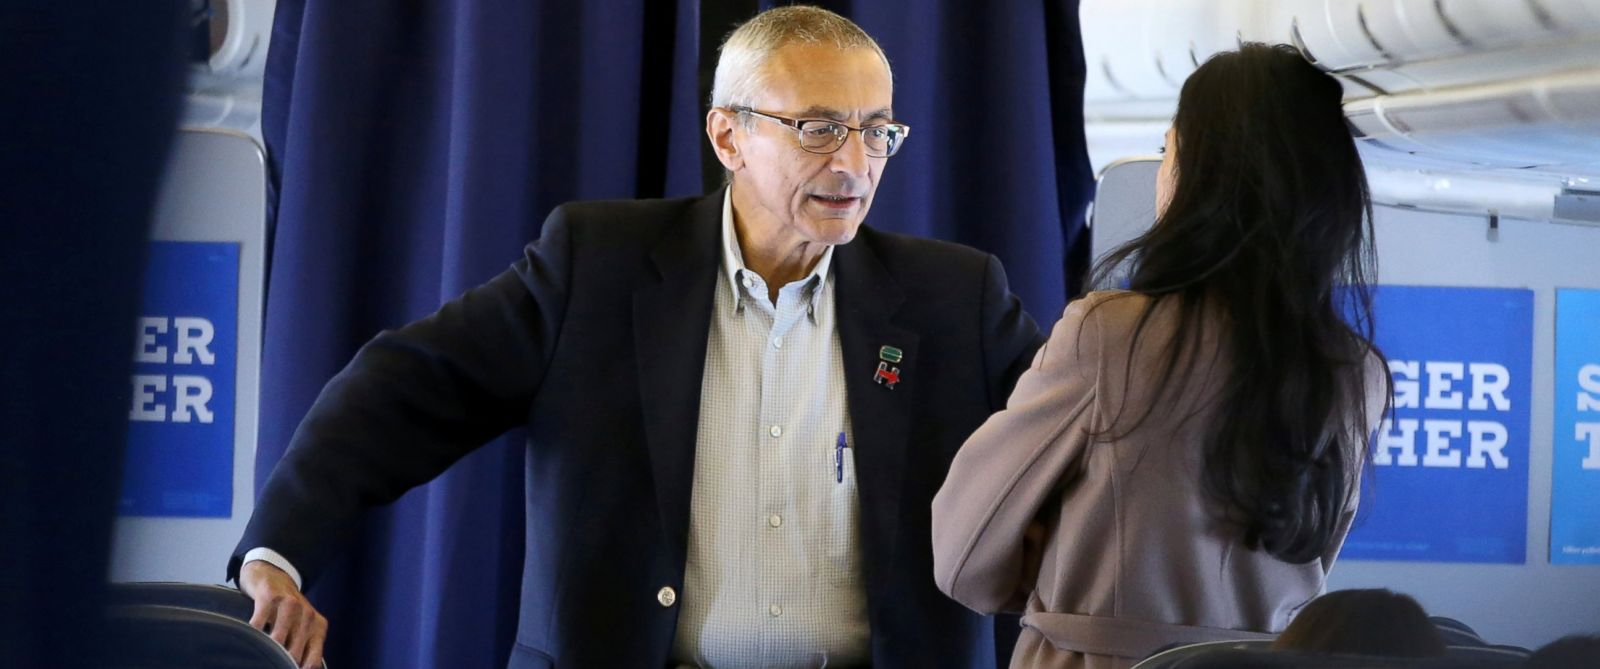 PHOTO:Campaign Manager John Podesta, left, speaking to senior advisor Huma Abedin on the Hillary Clinton campaign plane from New York enroute to Miami, October 11, 2016.